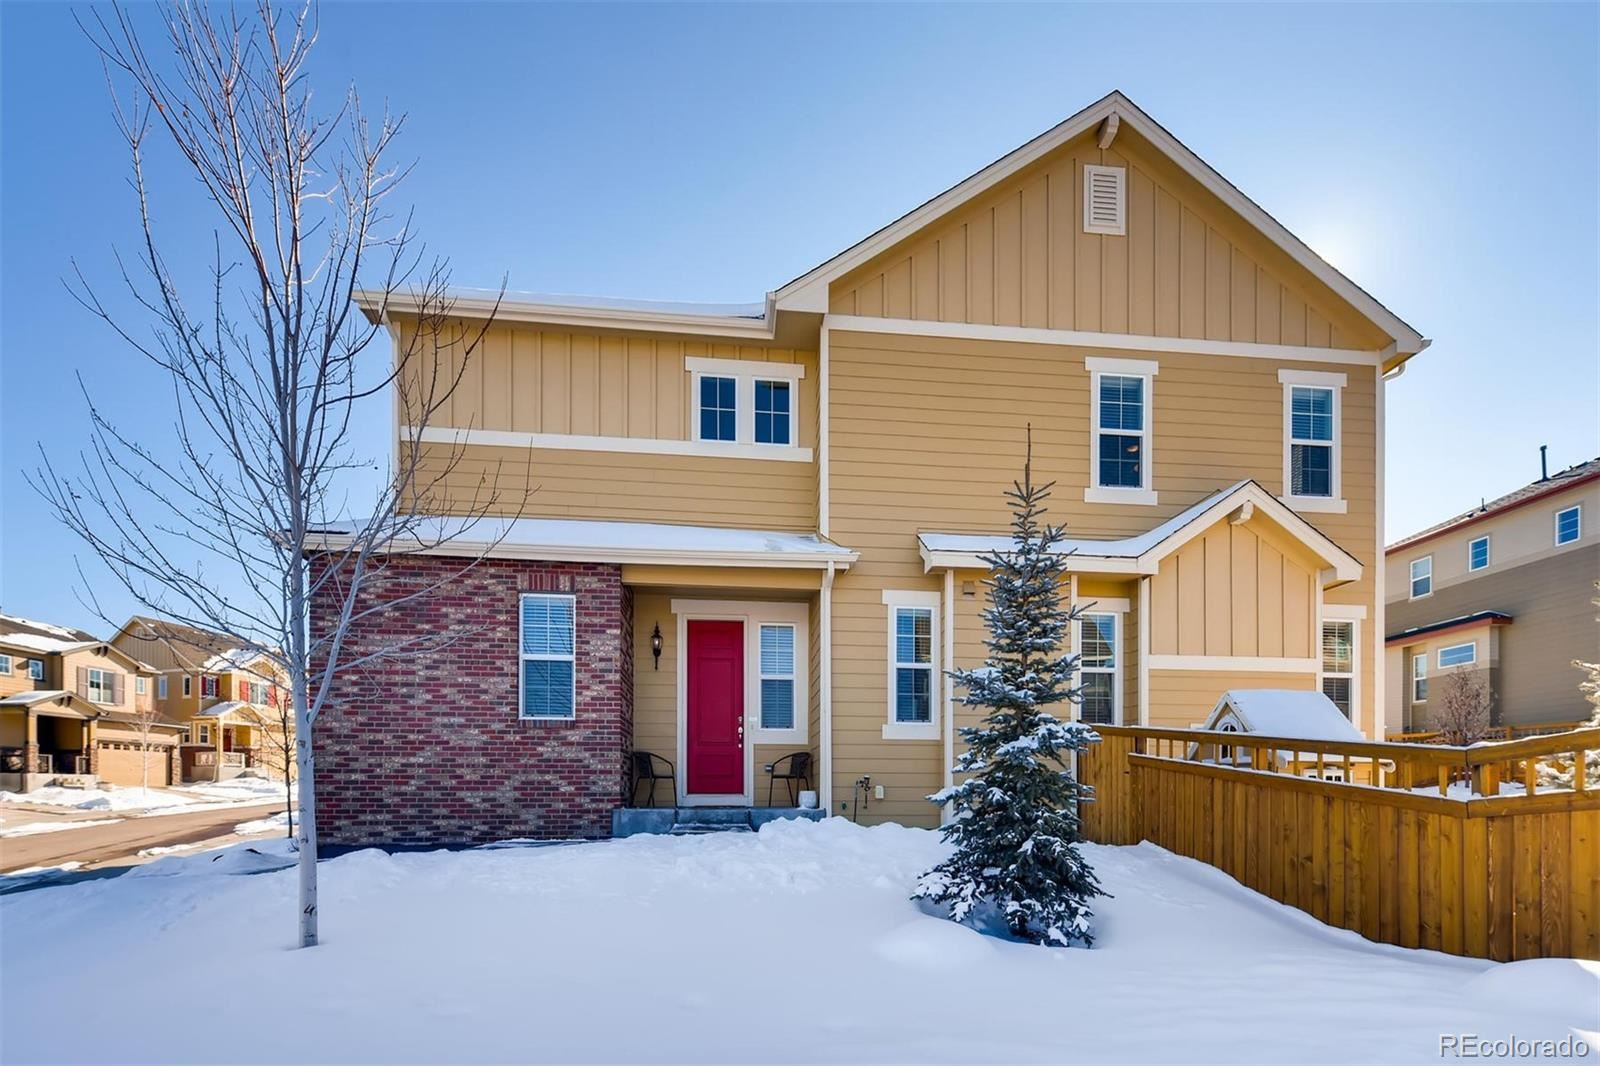 3231 Youngheart Way, Castle Rock, CO 80109 - #: 6601022